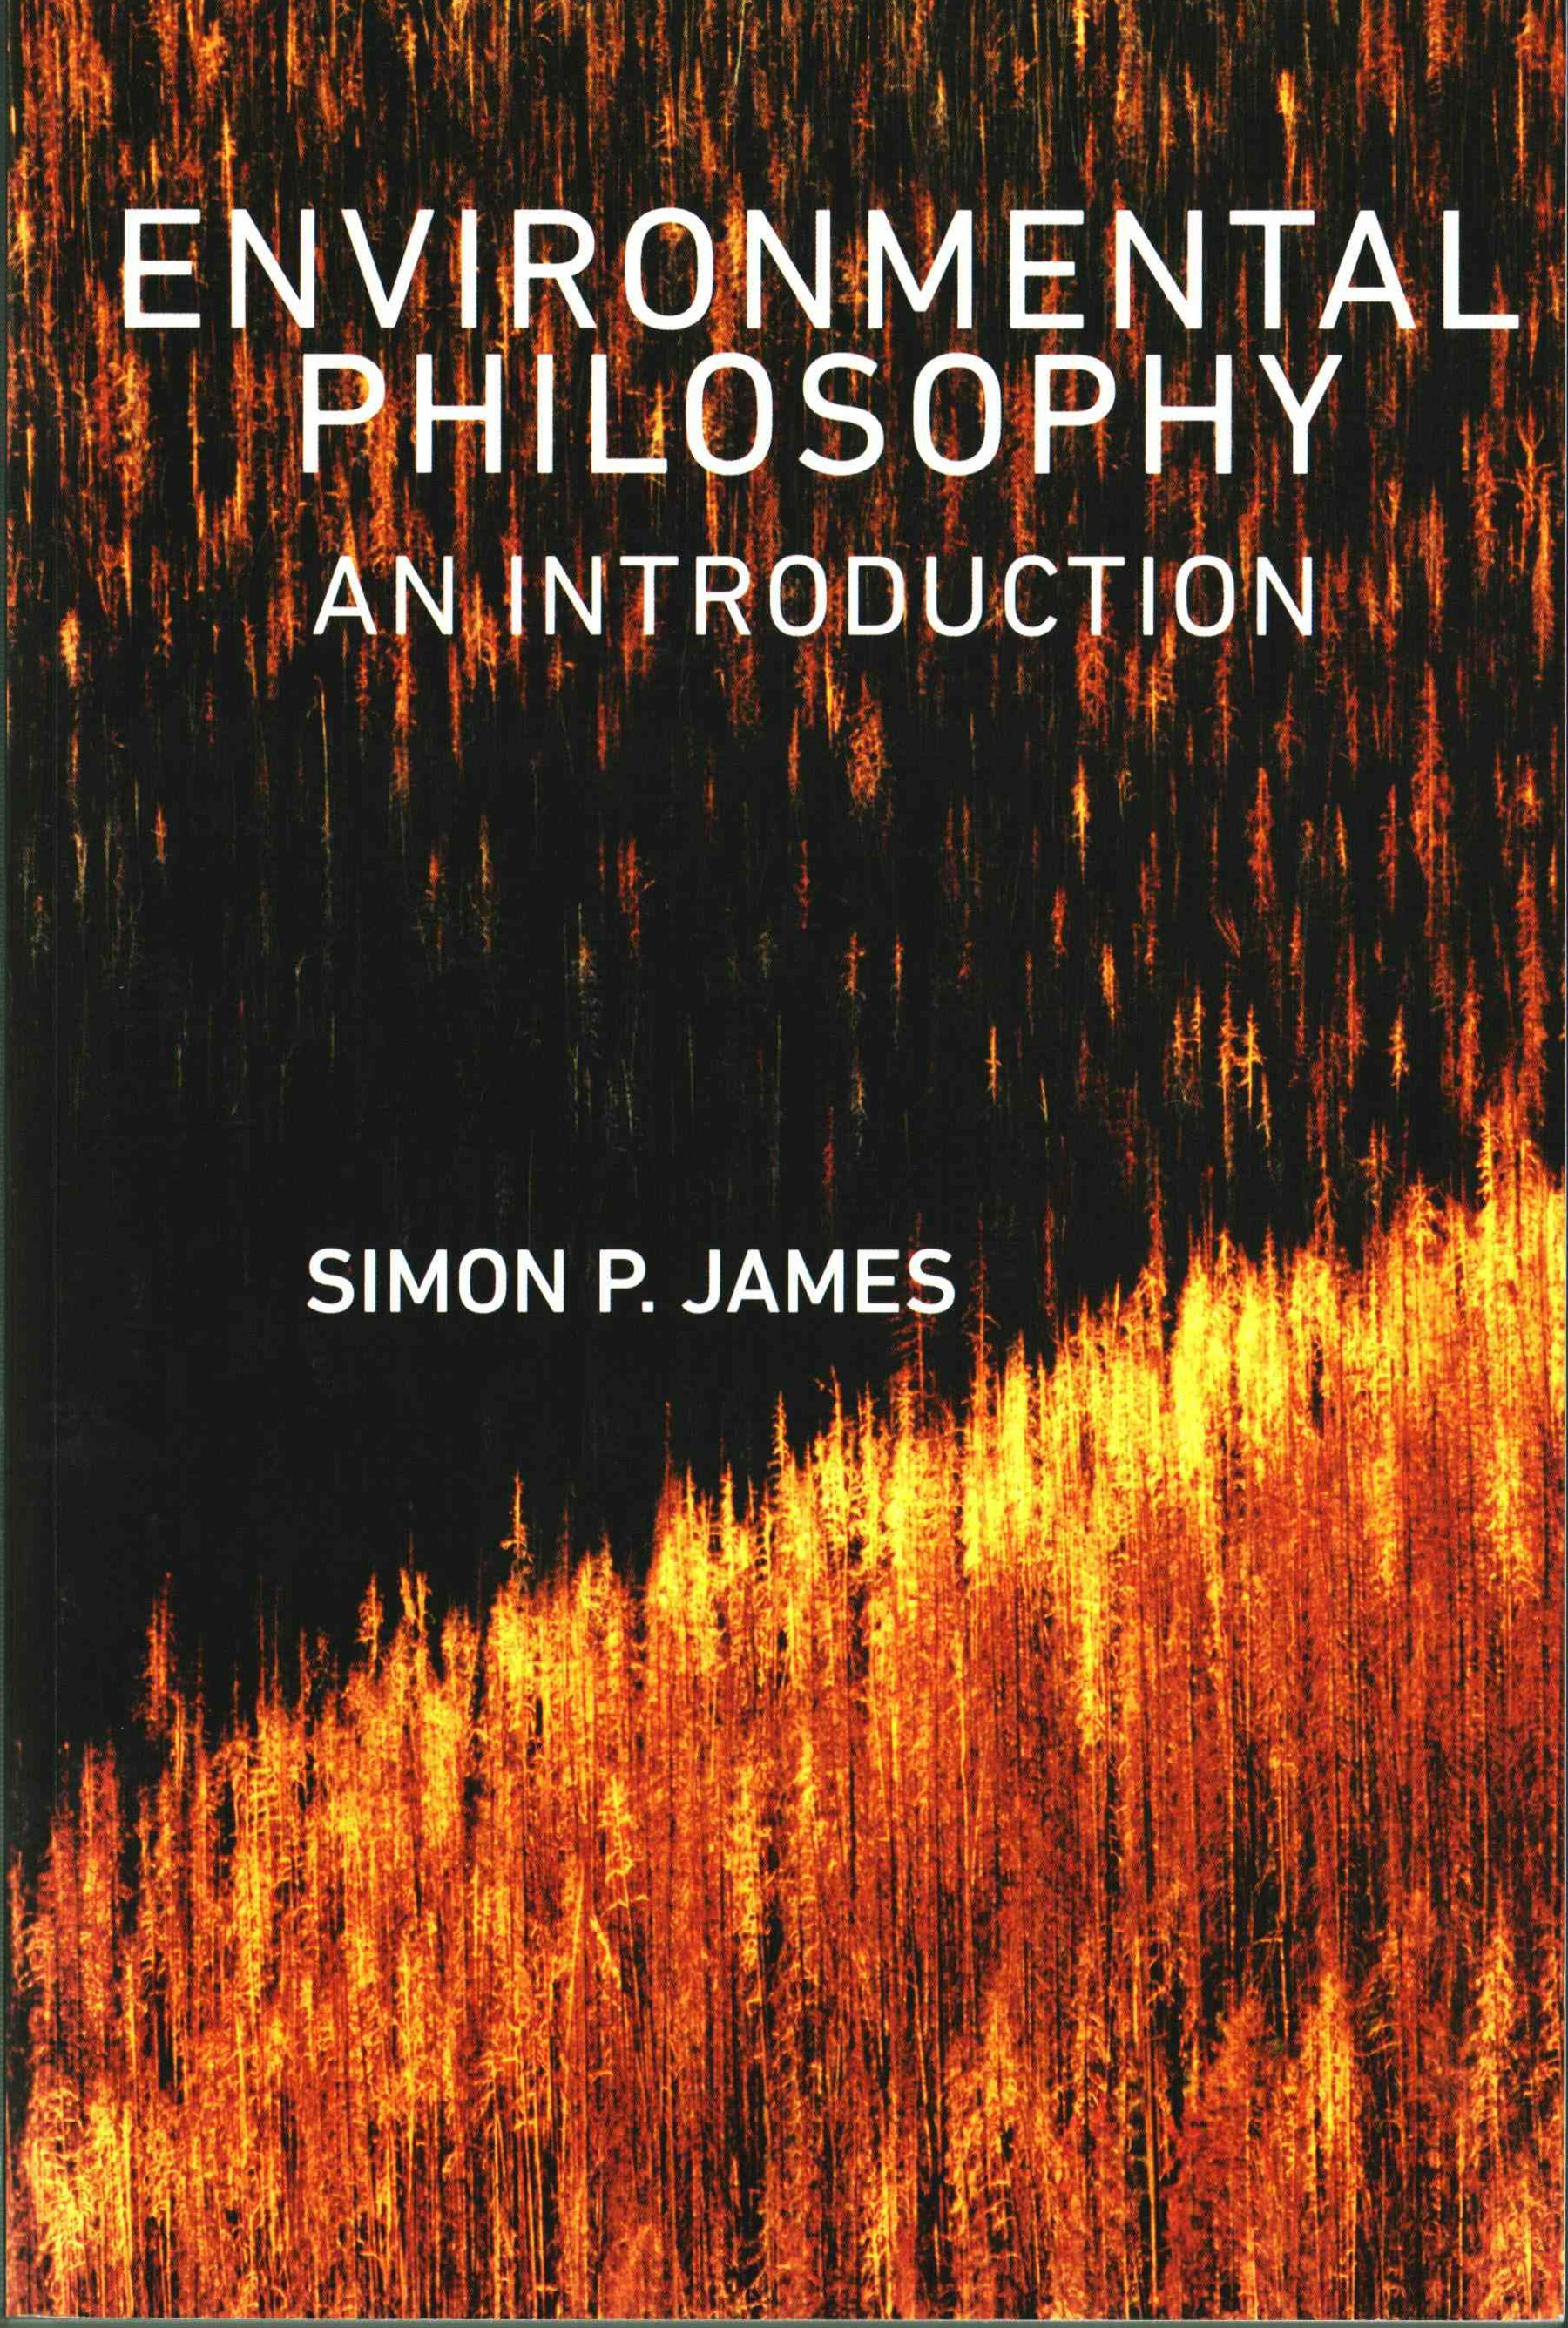 Environmental Philosophy - an Introduction